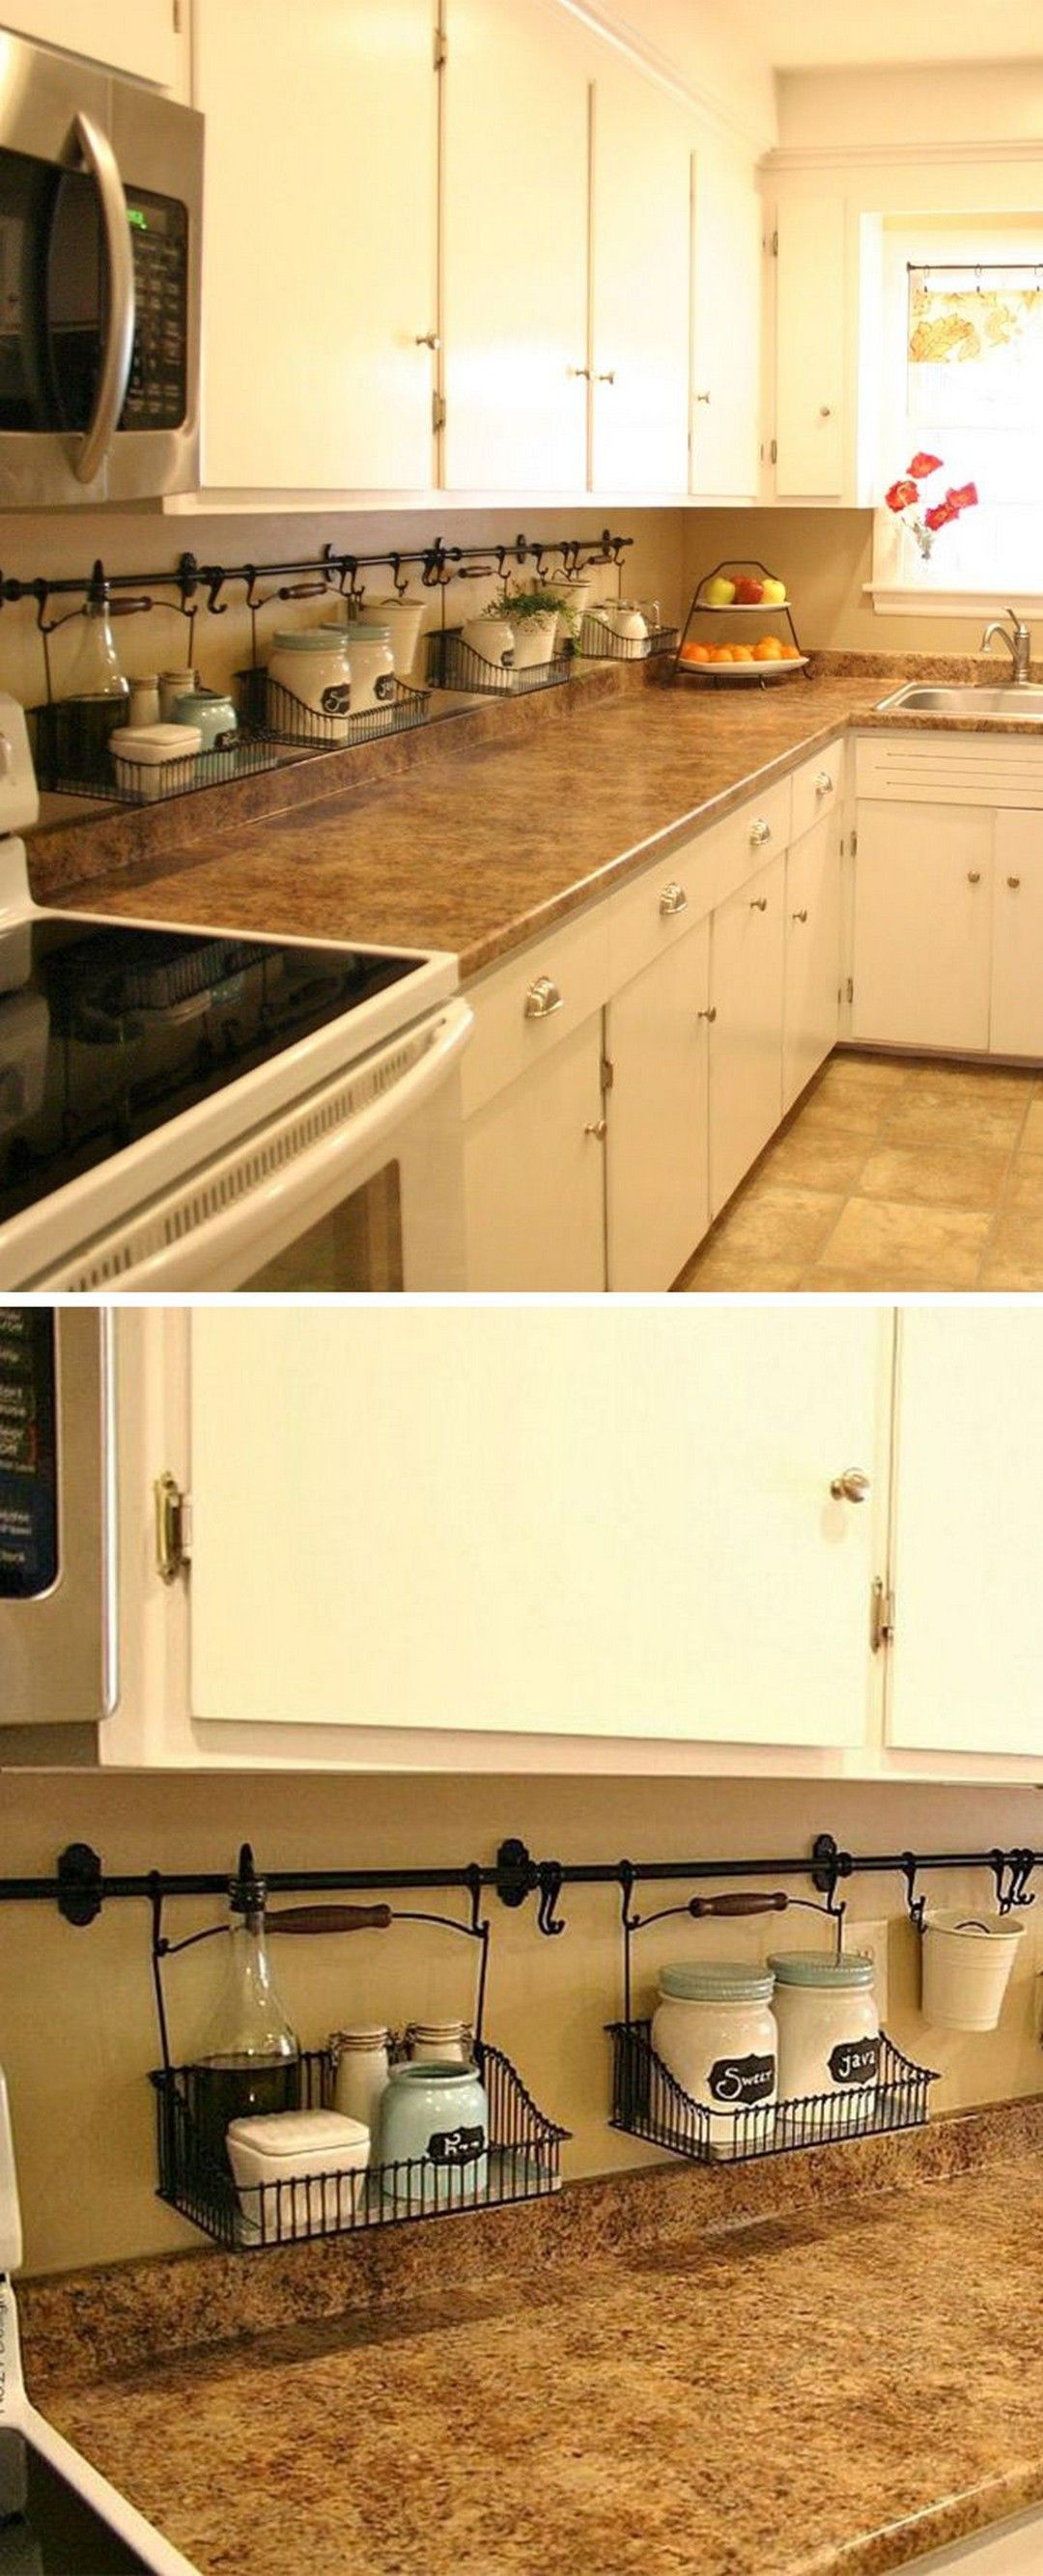 cabinet luxury sinkanizers countertop the containers countertops storage kitchen bathroom under quickly